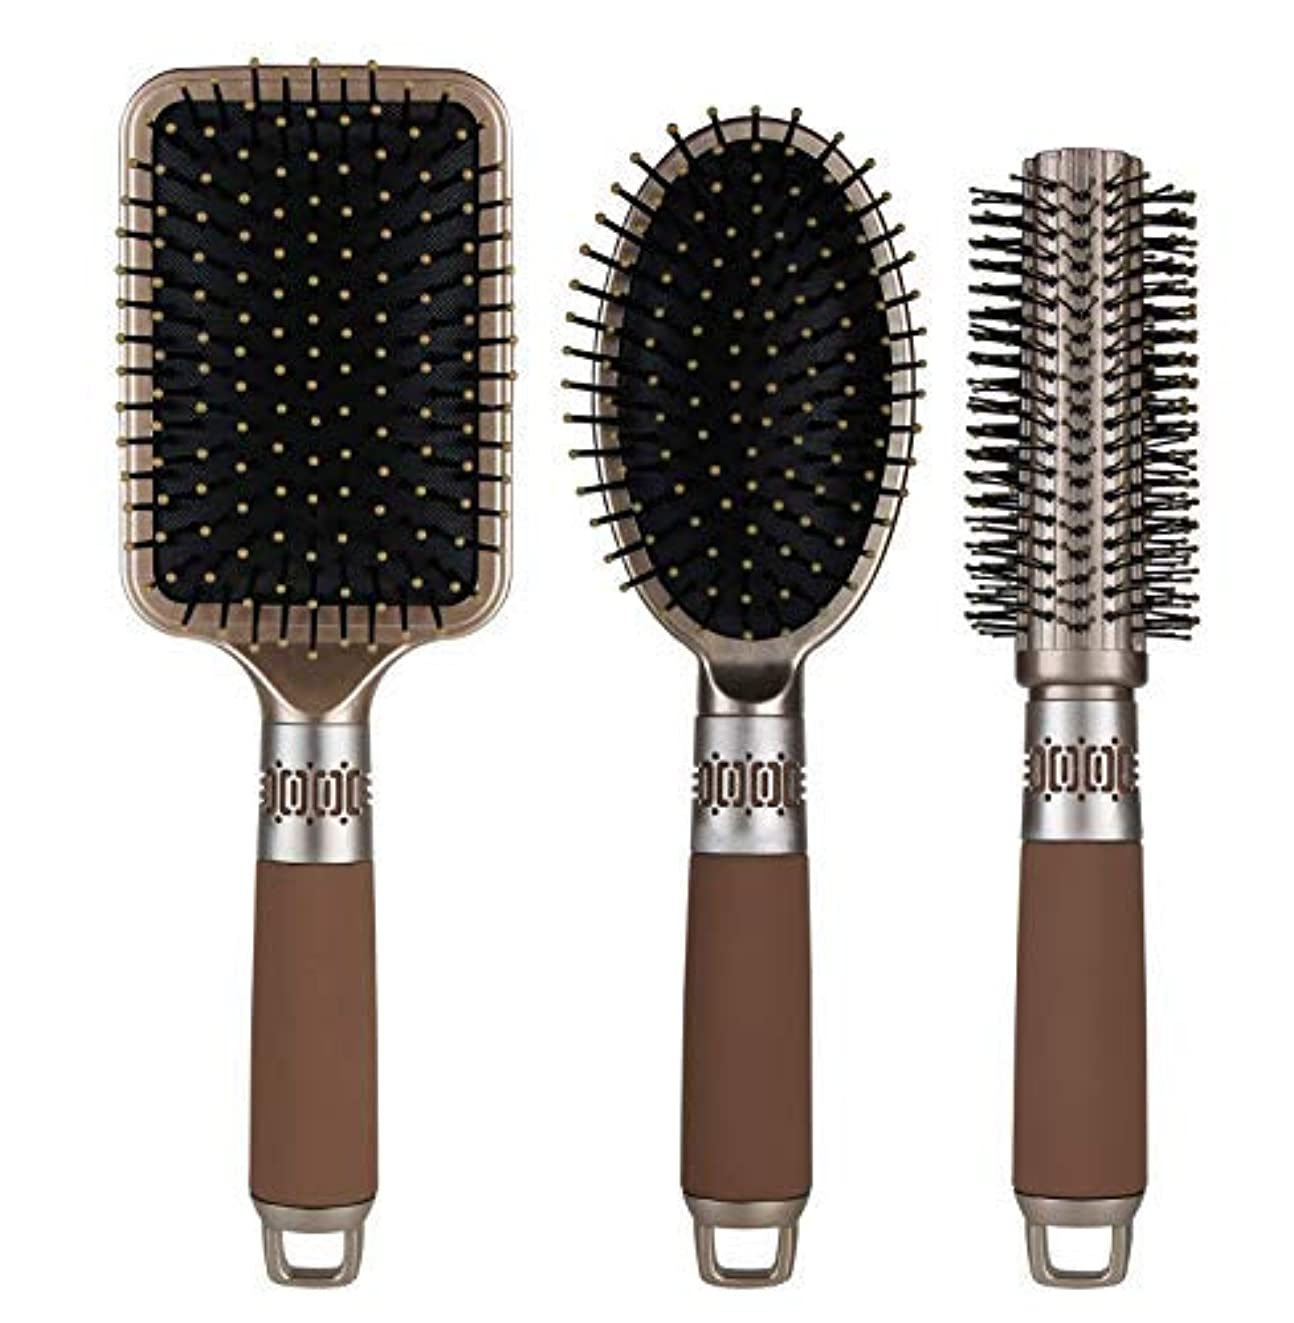 発揮する野な素晴らしいですNVTED 3PCS Hair Combs, Massage Paddle Round Brush Hair Brushes Set Anti Static Detangling Air Cushion Bristle...